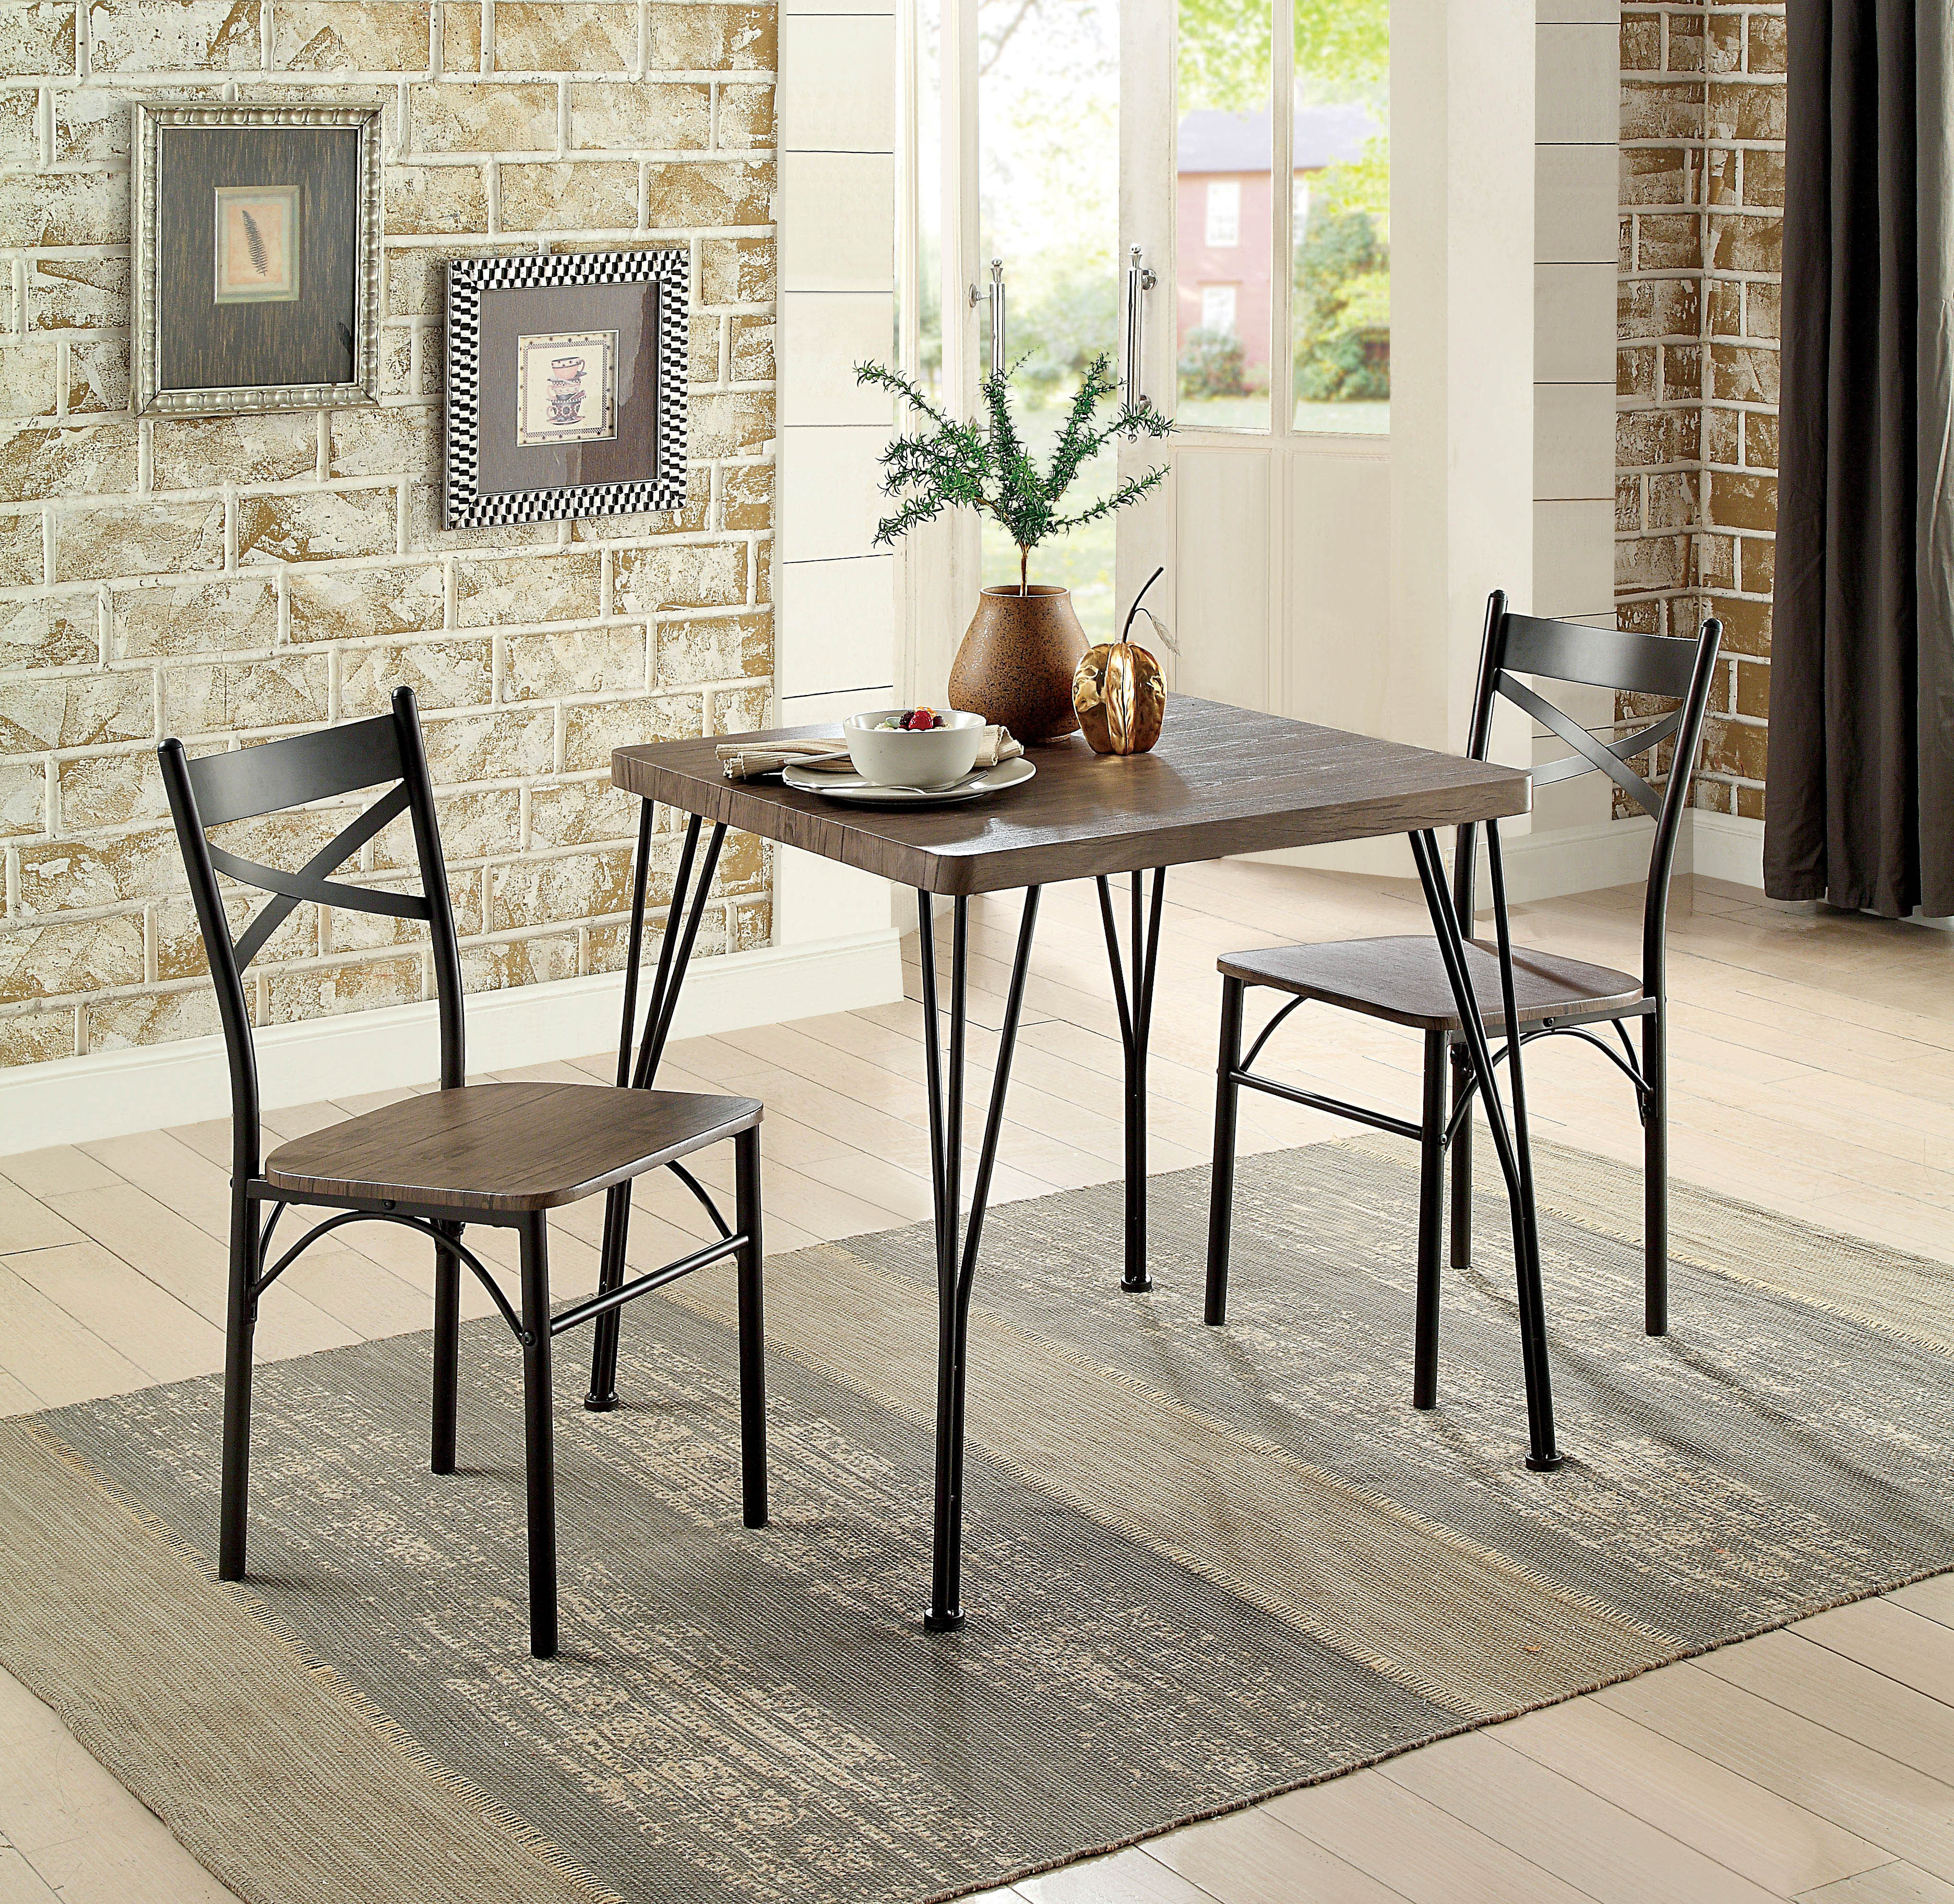 Widely Used Laurel Foundry Modern Farmhouse Guertin 3 Piece Dining Set & Reviews Throughout Kinsler 3 Piece Bistro Sets (View 3 of 25)